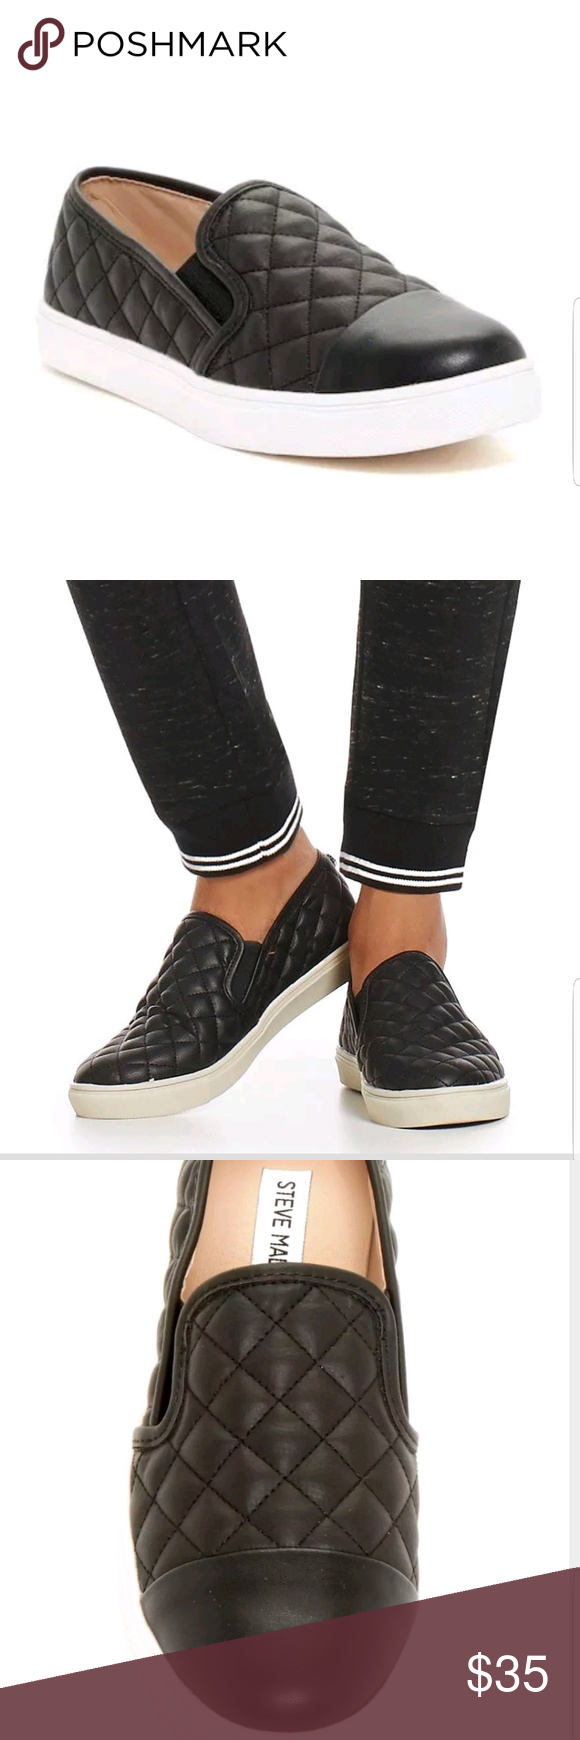 b7b81773a27 Steve Madden Zaander Slip-On Sneaker Reg  59.95 NEW These are the floor  model (bottoms are a little dirty due to being the floor model) Details  Somewhere ...